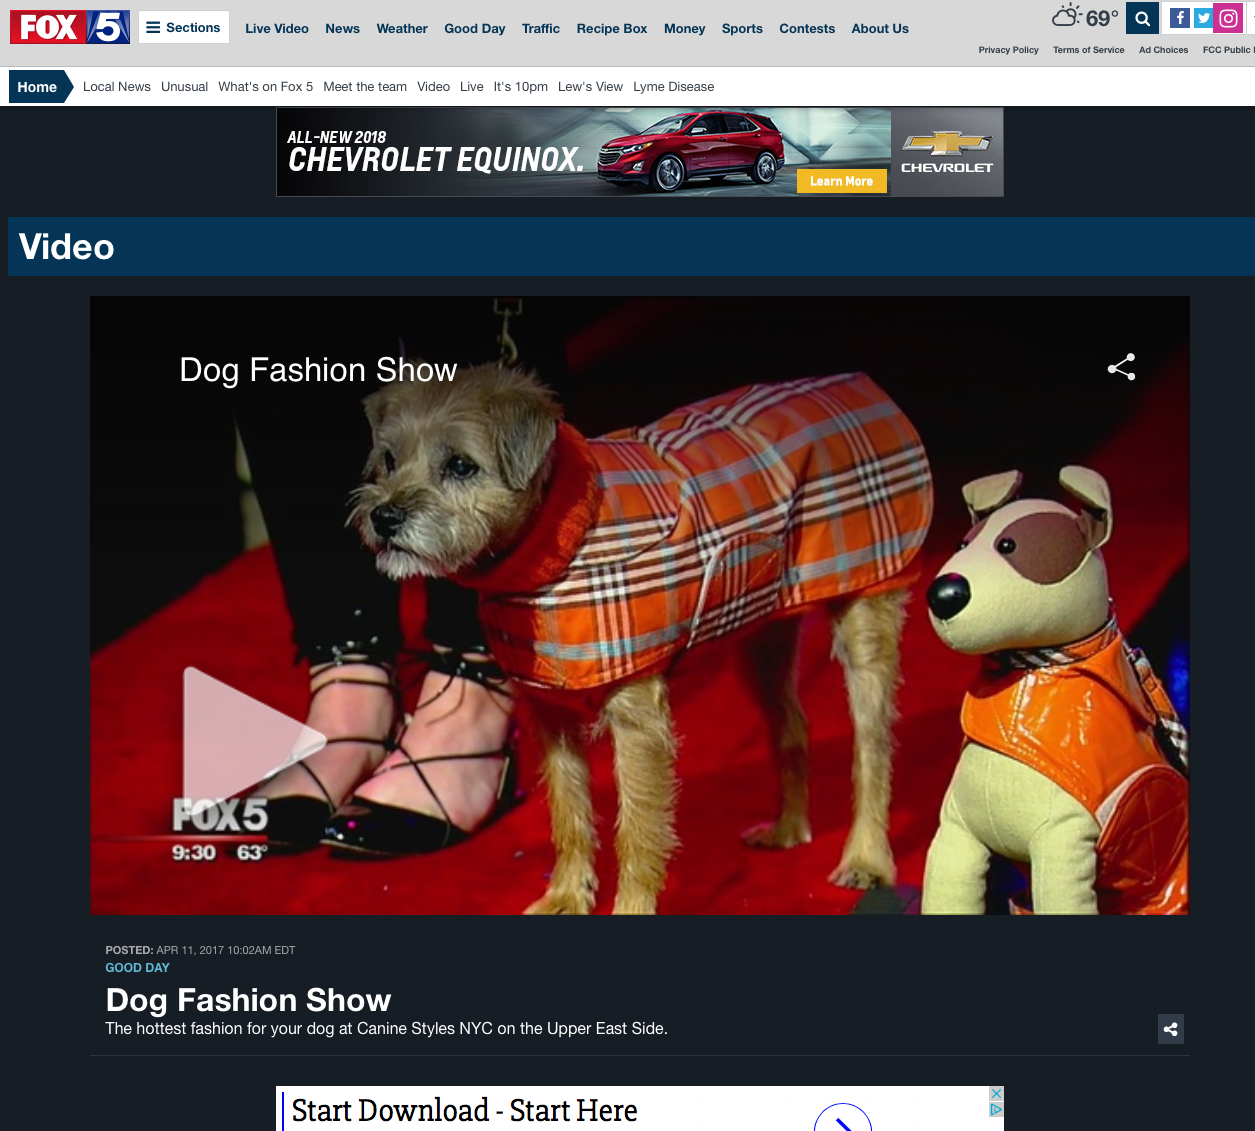 4/17 - Fox 5 NY puts on A Canine Styles Fashion Show to showcase the HOTTEST Dog Fashion.